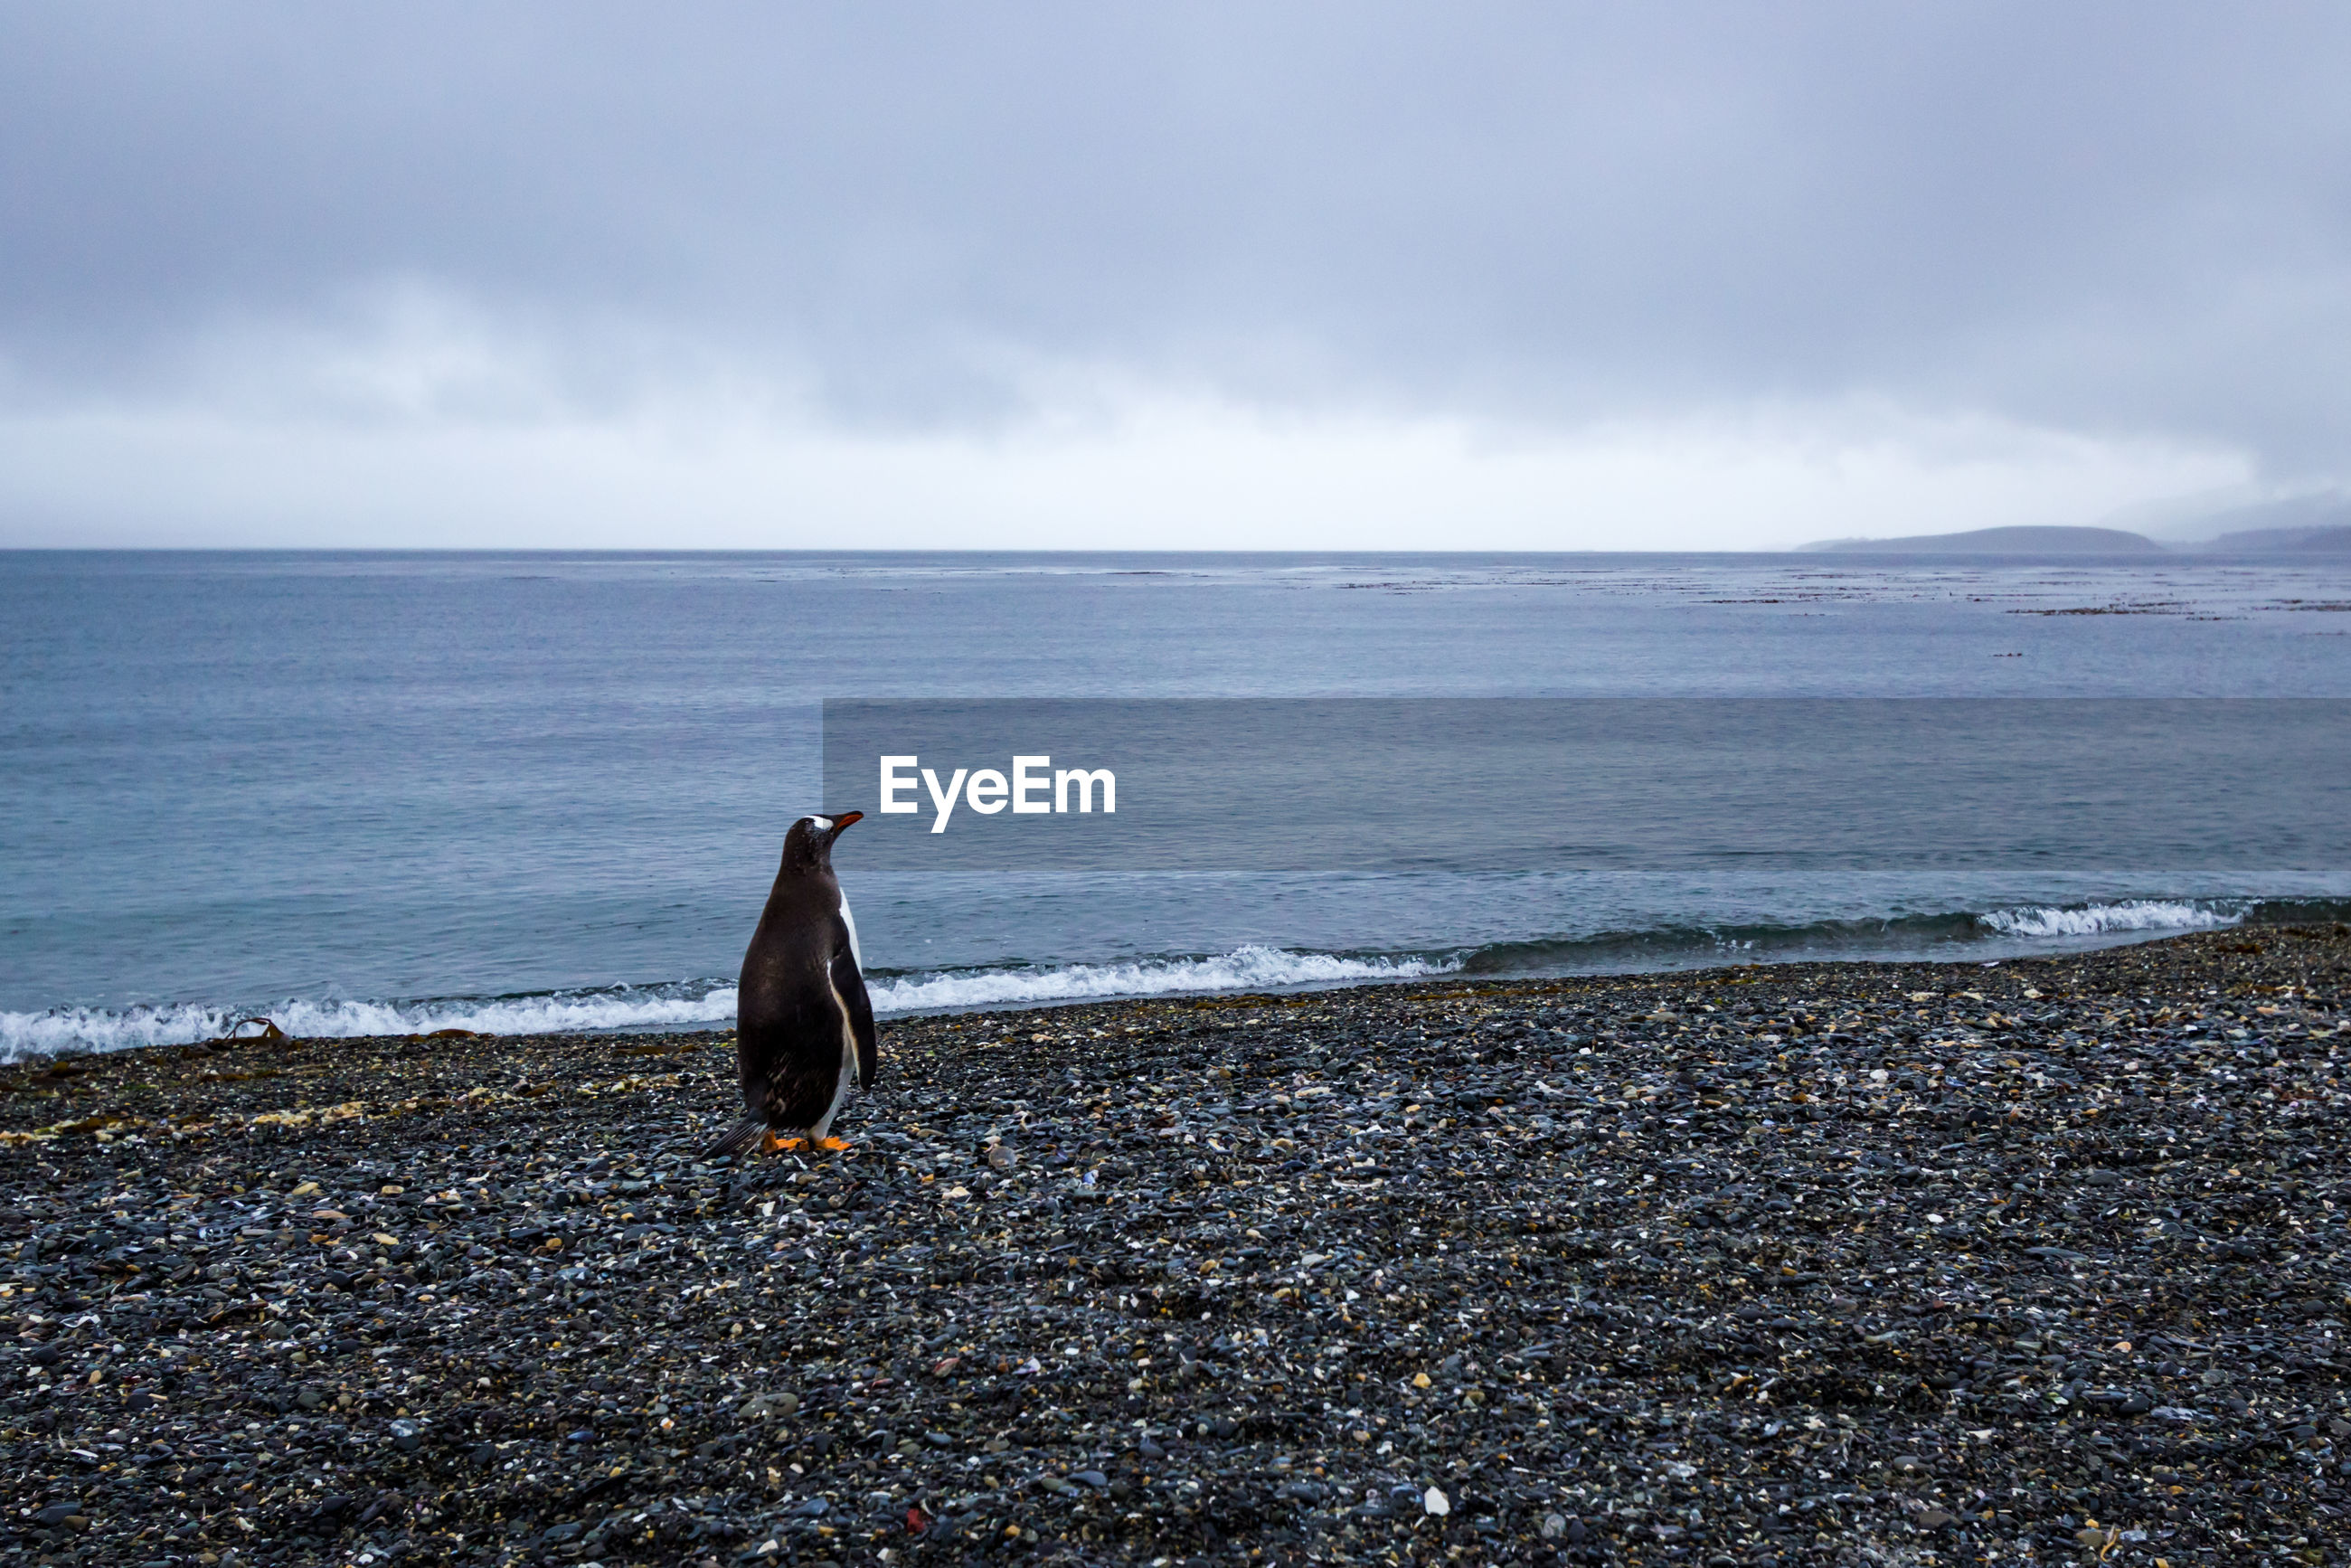 Penguin looking away while standing at beach